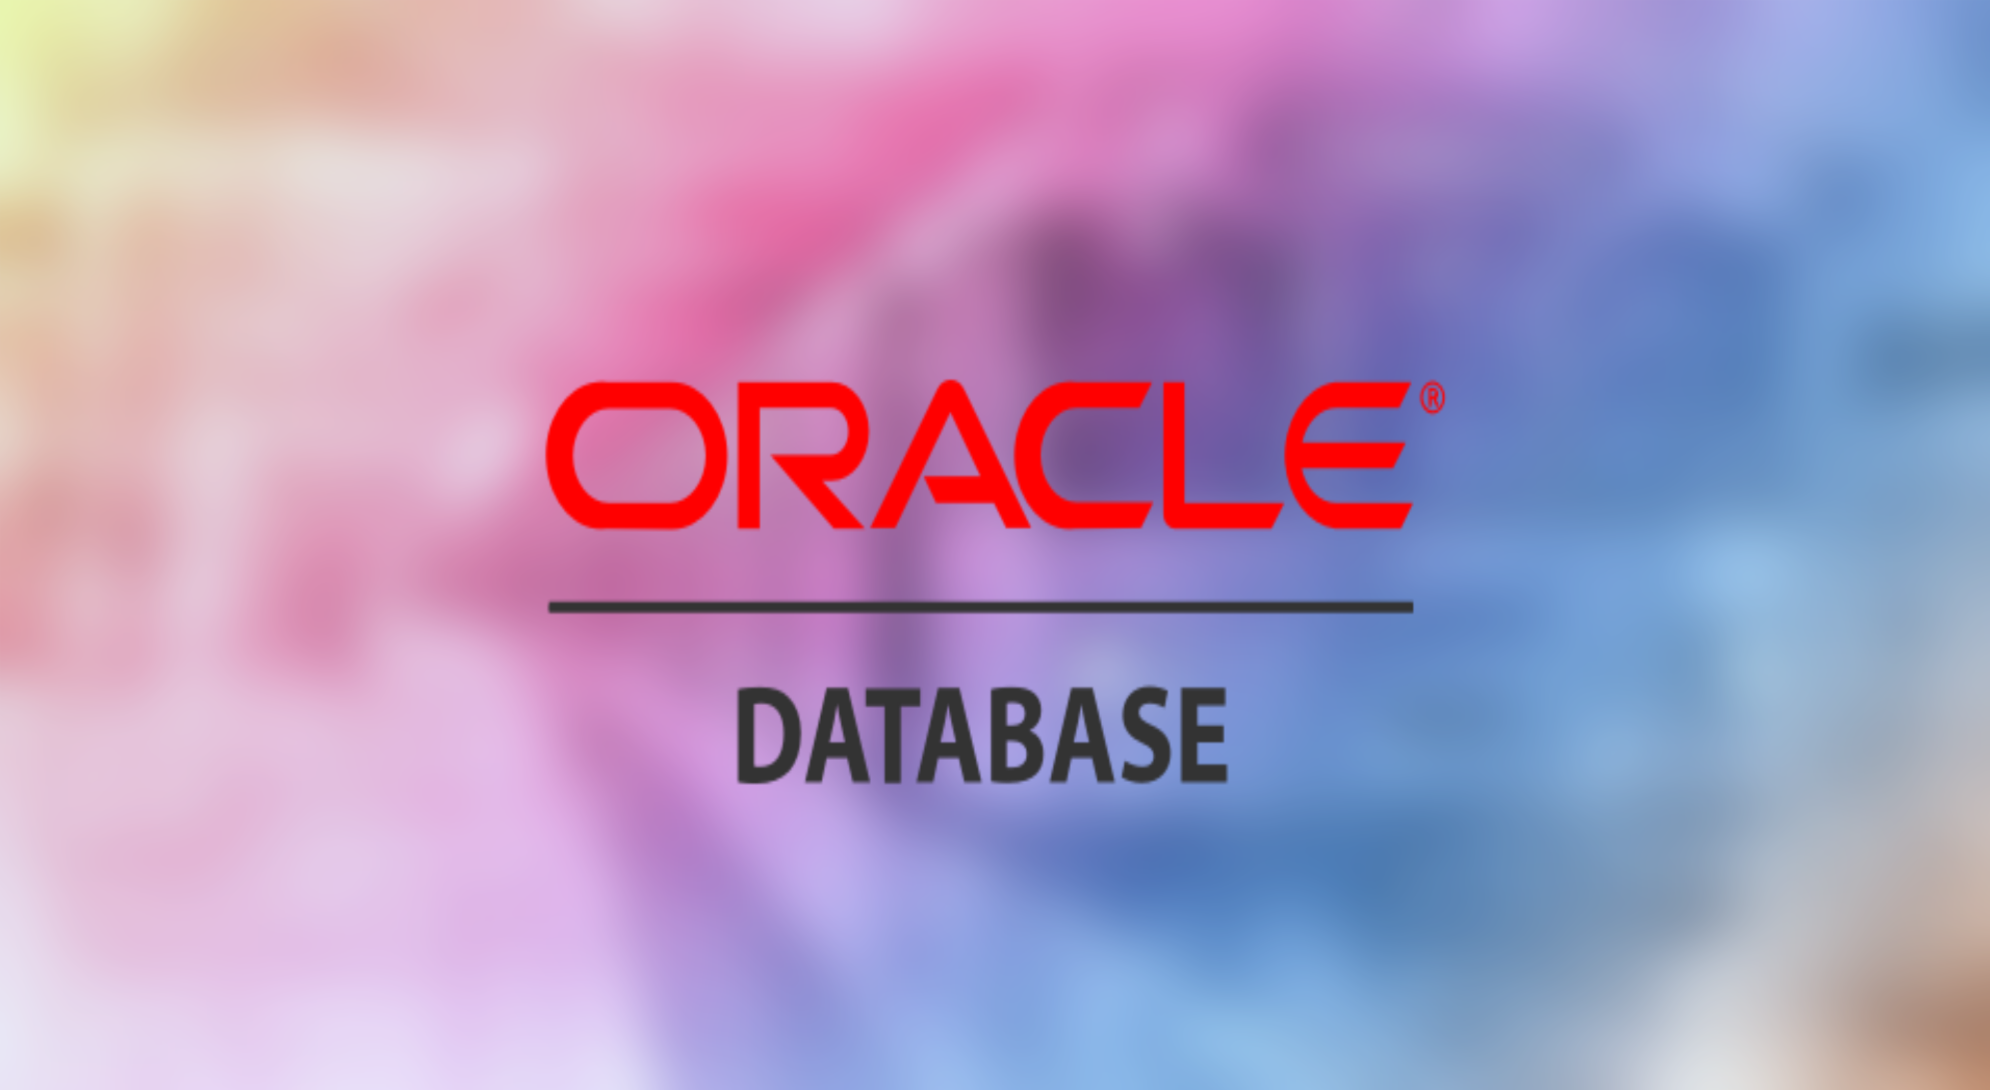 Overview of Oracle